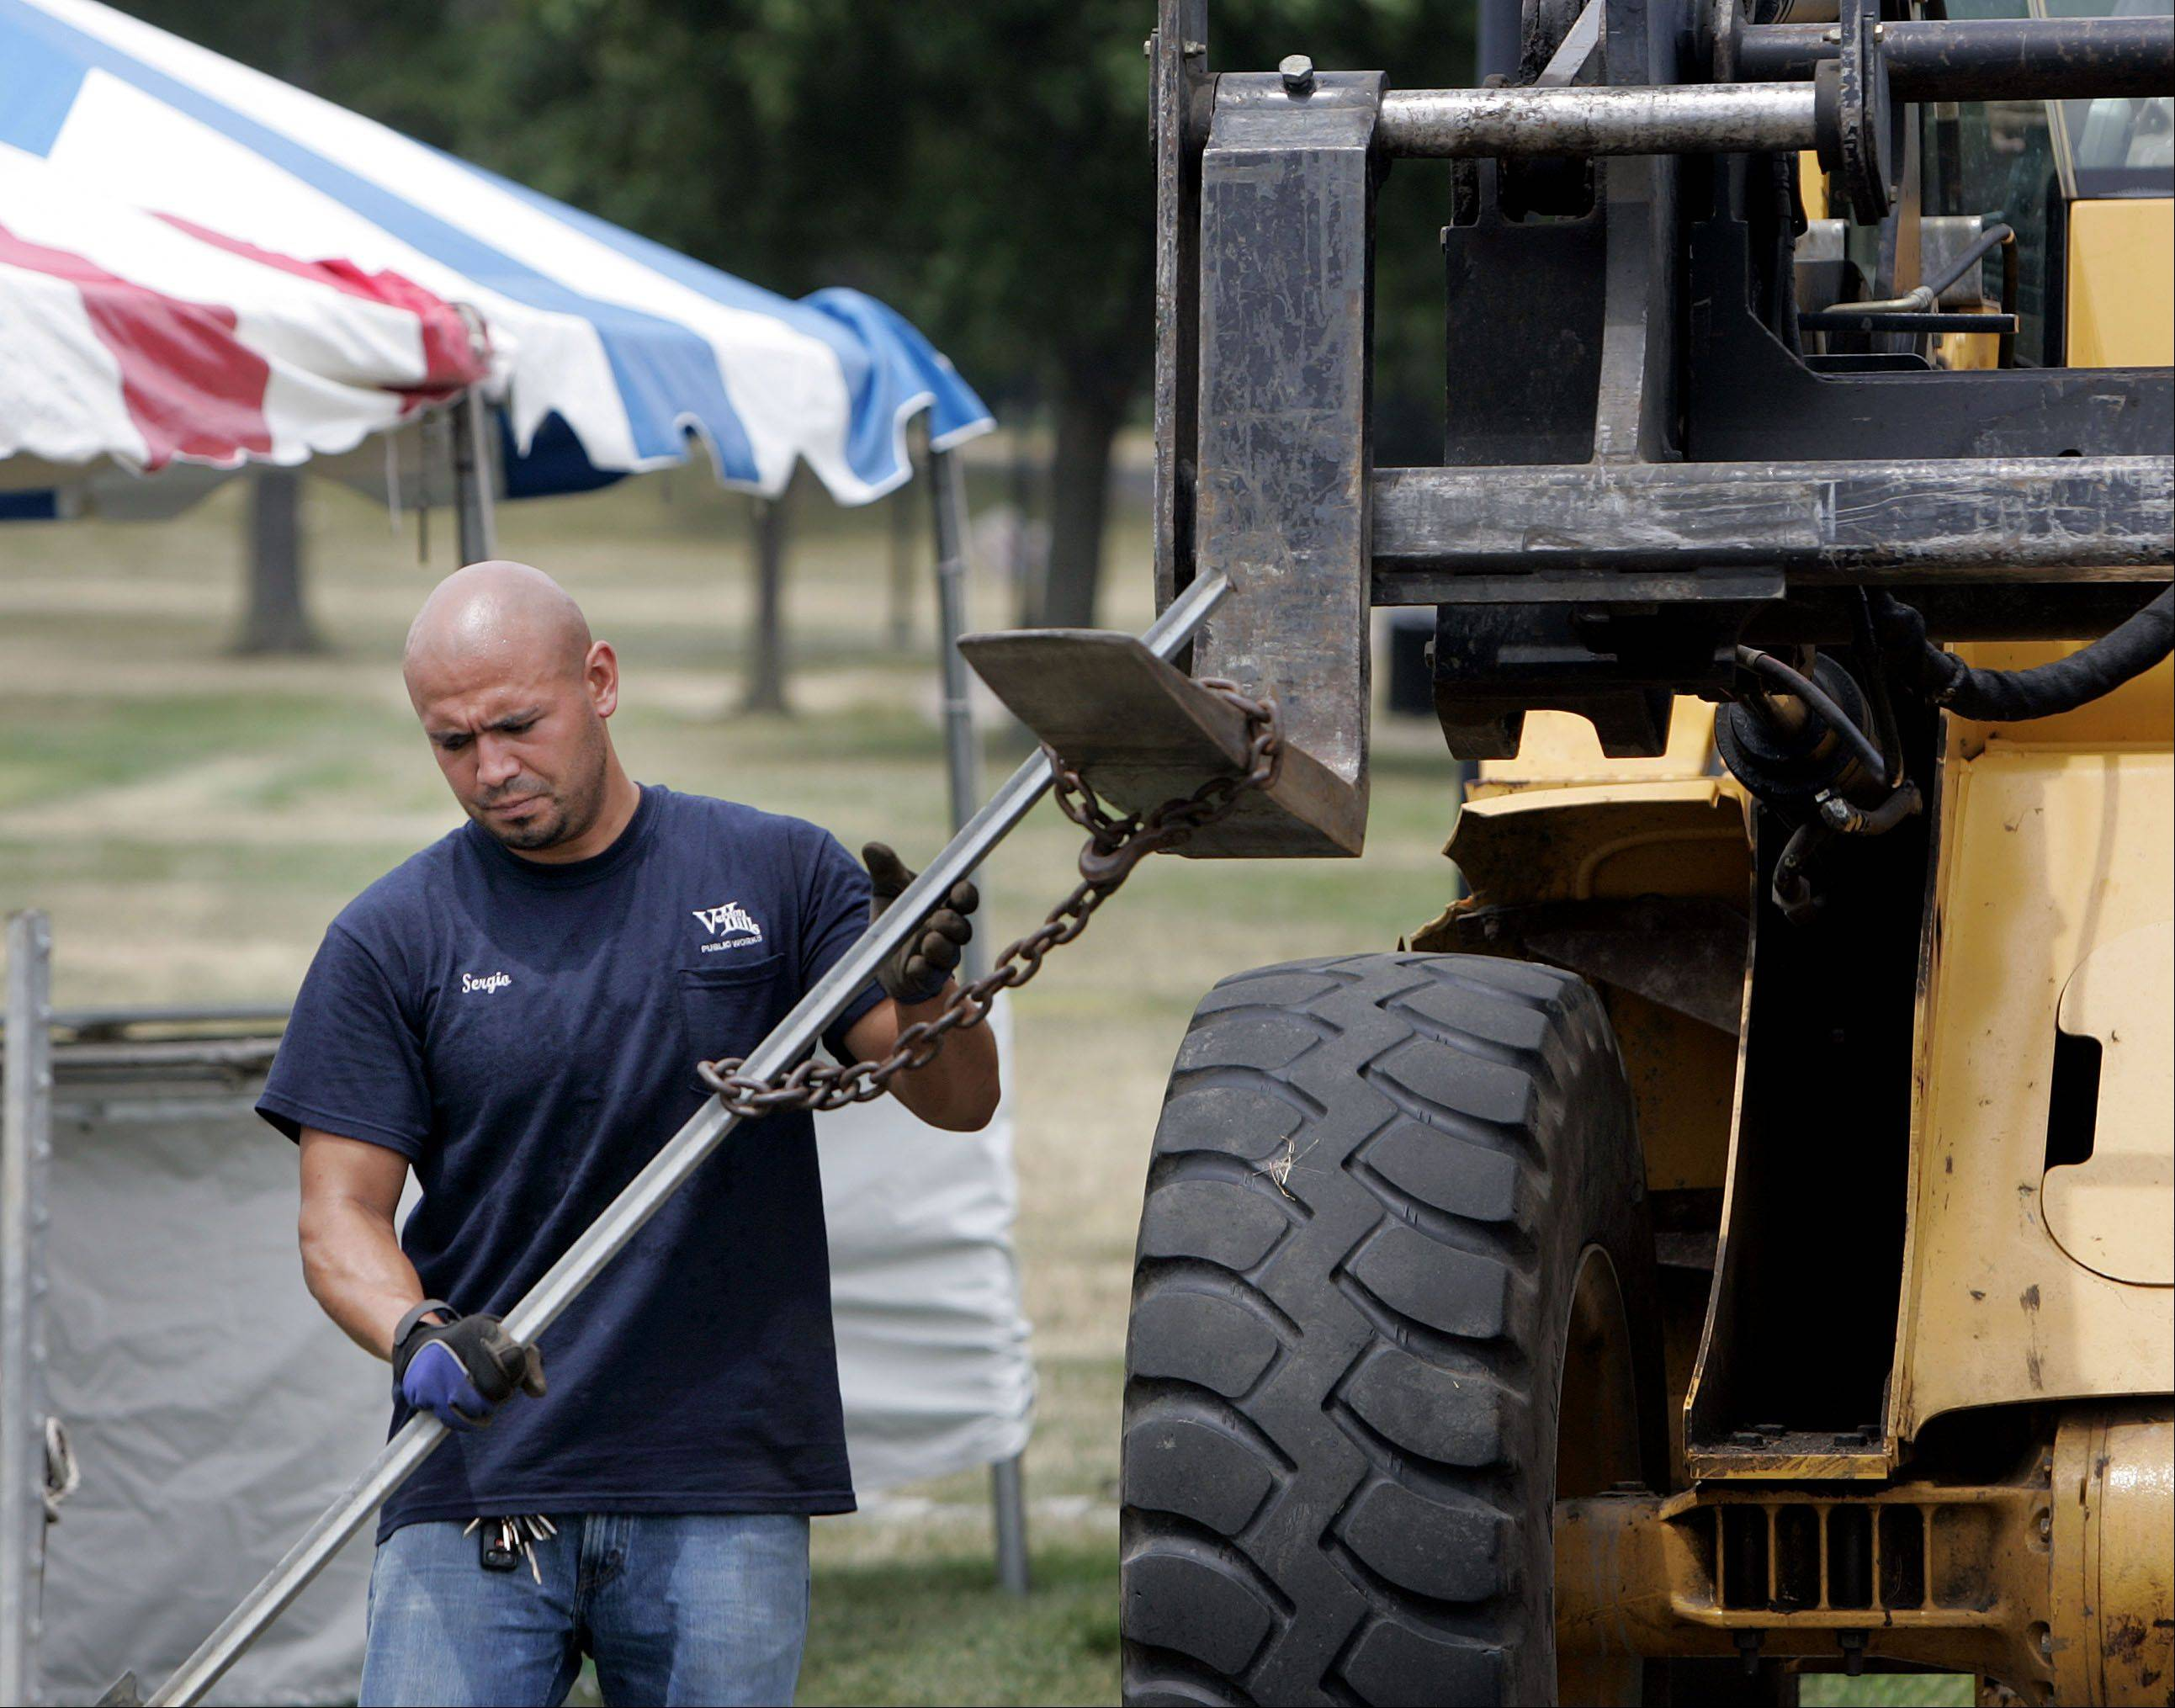 Sergio Soto, a Vernon Hills Public Works employee, works in Century Park Monday following Vernon Hills' Summer Celebration.